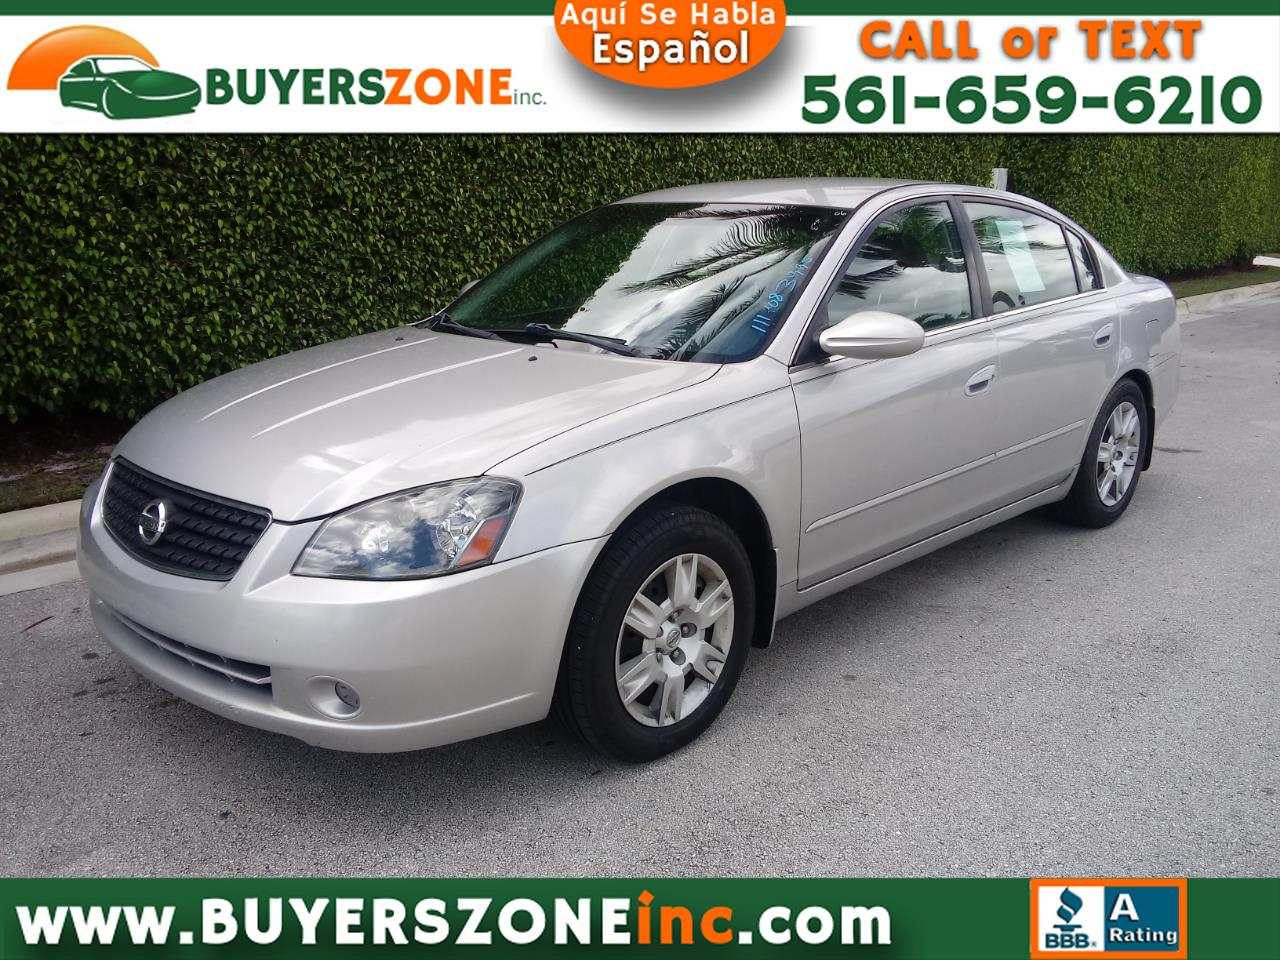 2006 Nissan Altima 4dr Sdn I4 Manual 2.5 S